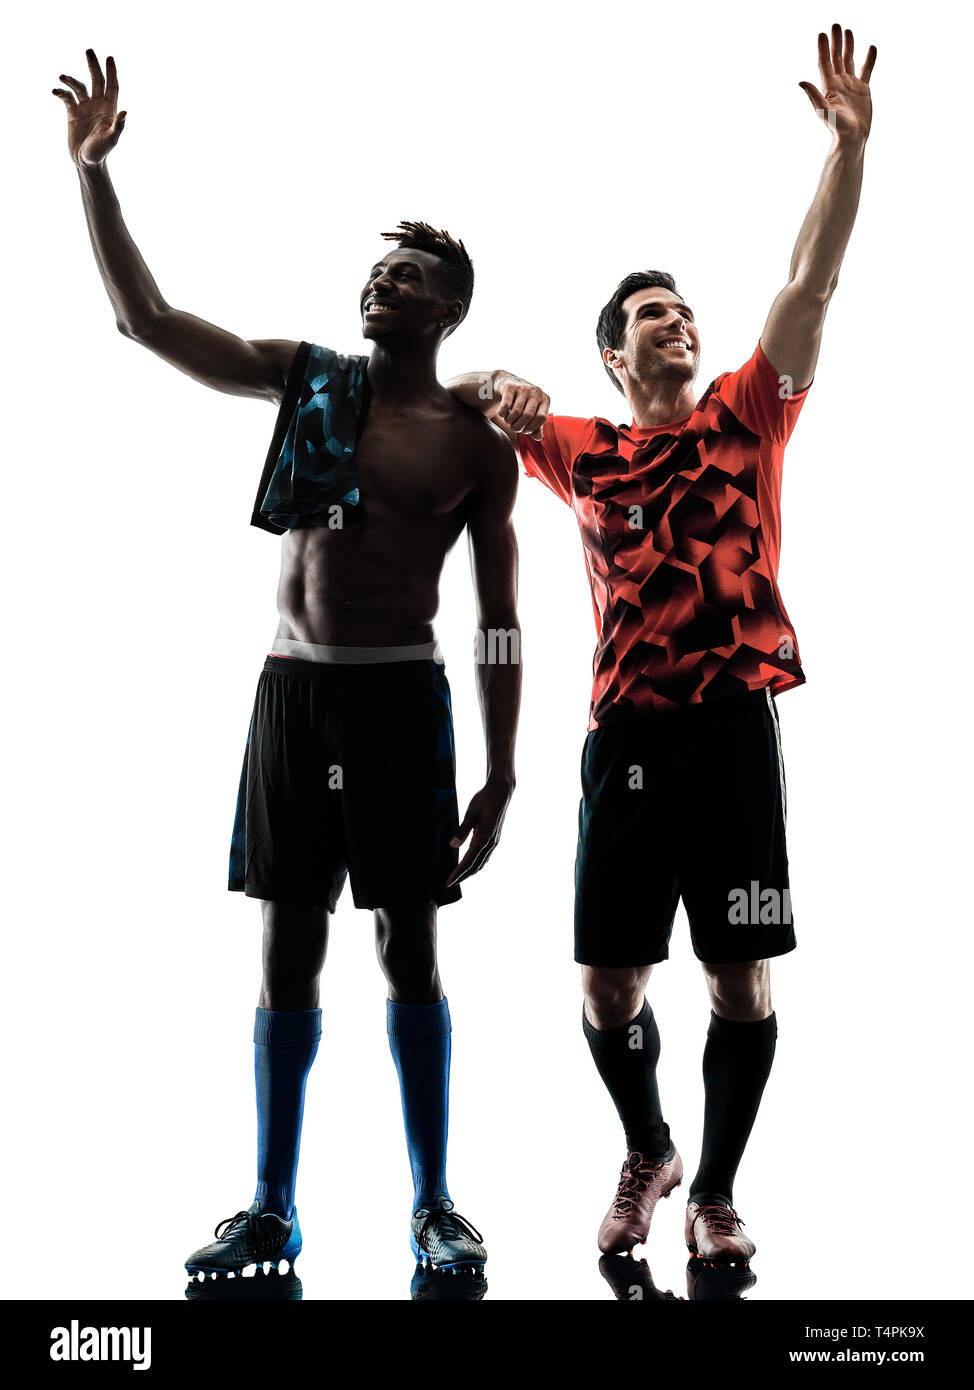 two soccer players men in studio silhouette isolated on white background - Stock Image